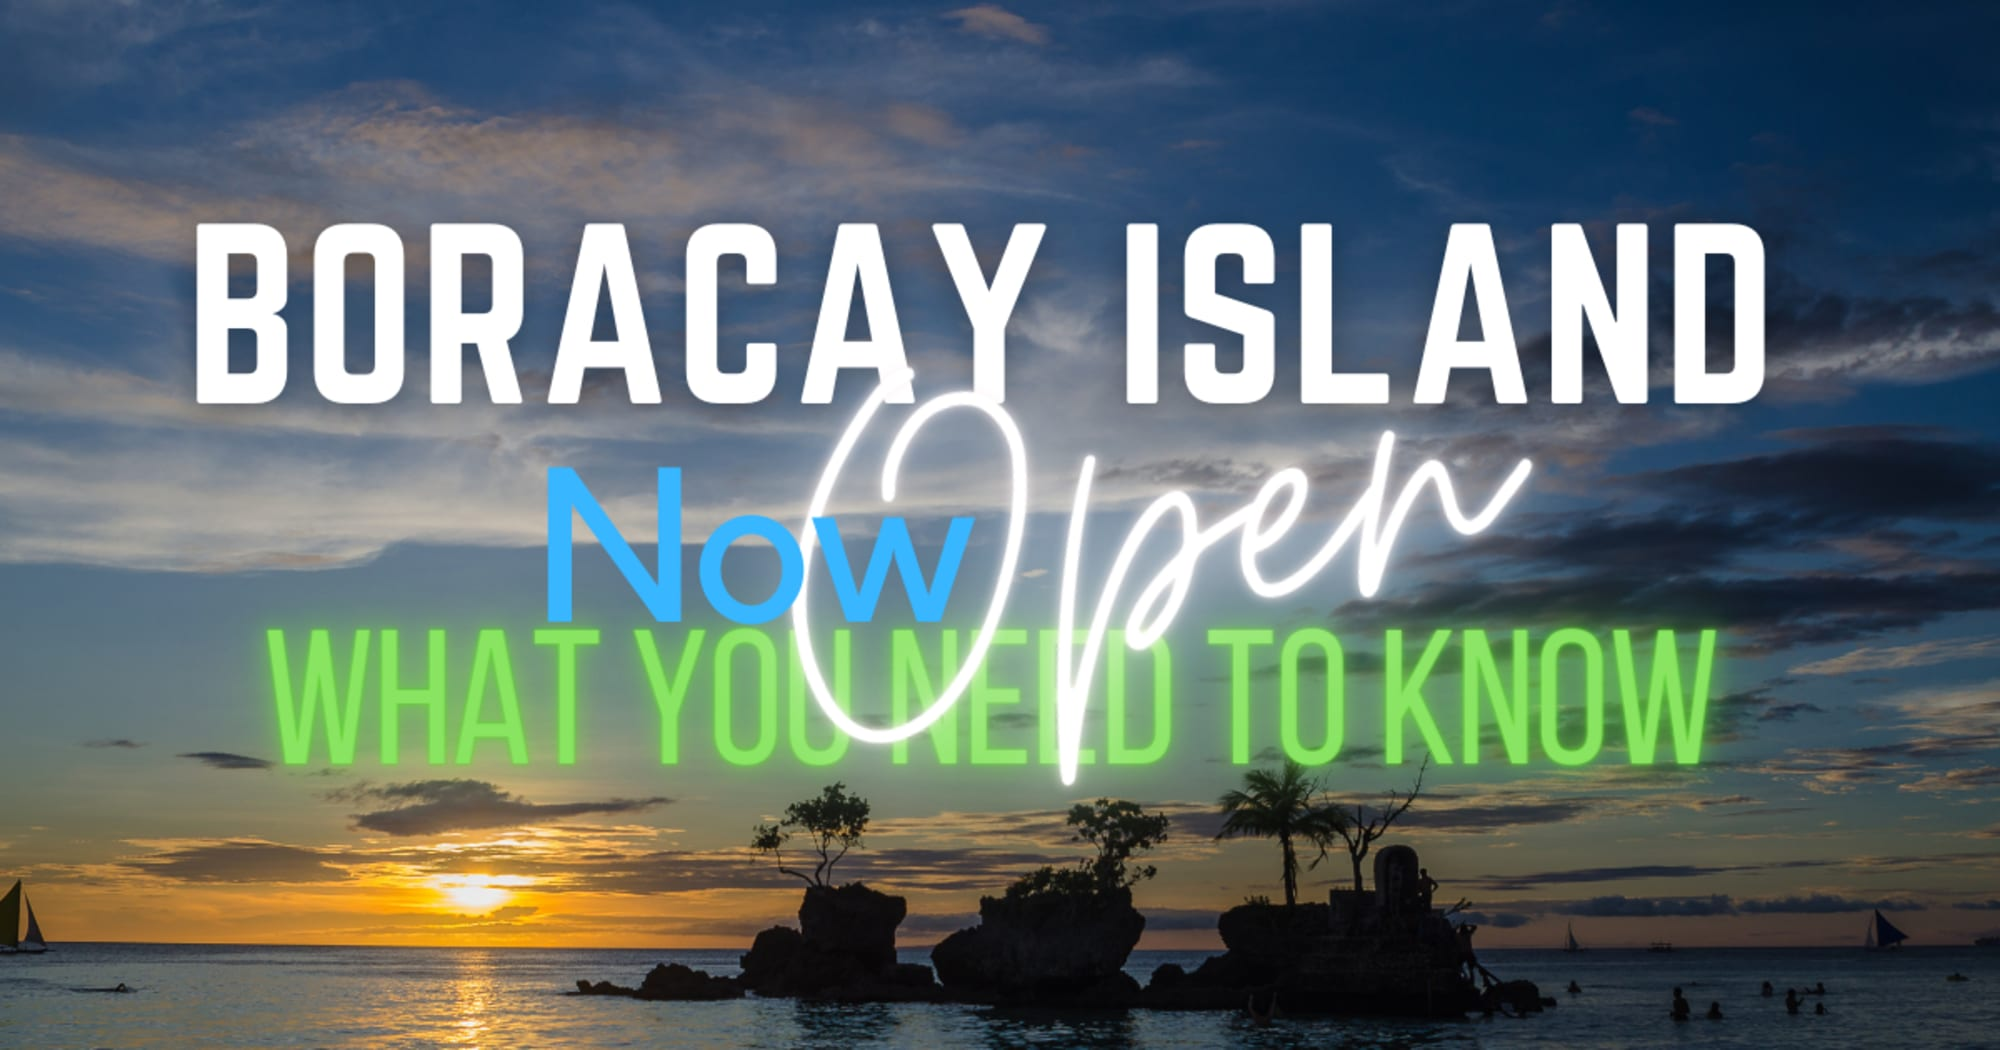 Updated requirements needed to enter Boracay Island as of September 2021